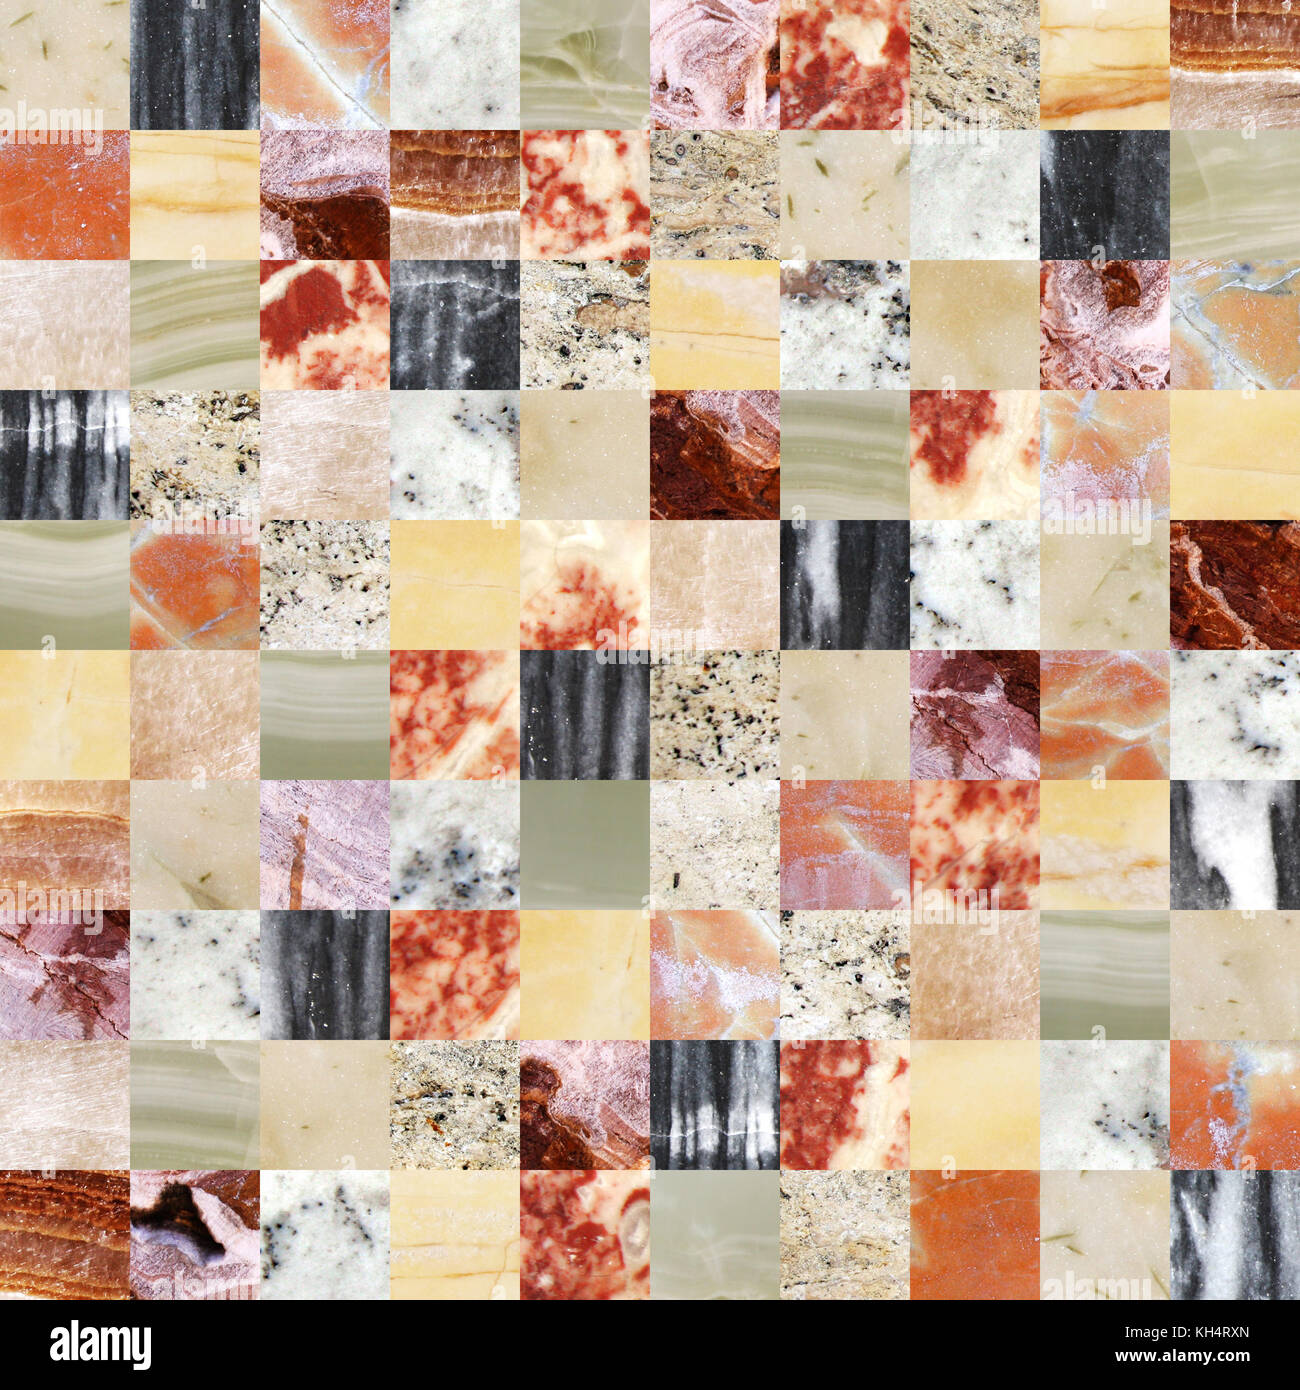 Cool Wallpaper Marble Collage - seamless-background-with-marble-and-granite-patterns-of-different-KH4RXN  Perfect Image Reference_47613.jpg